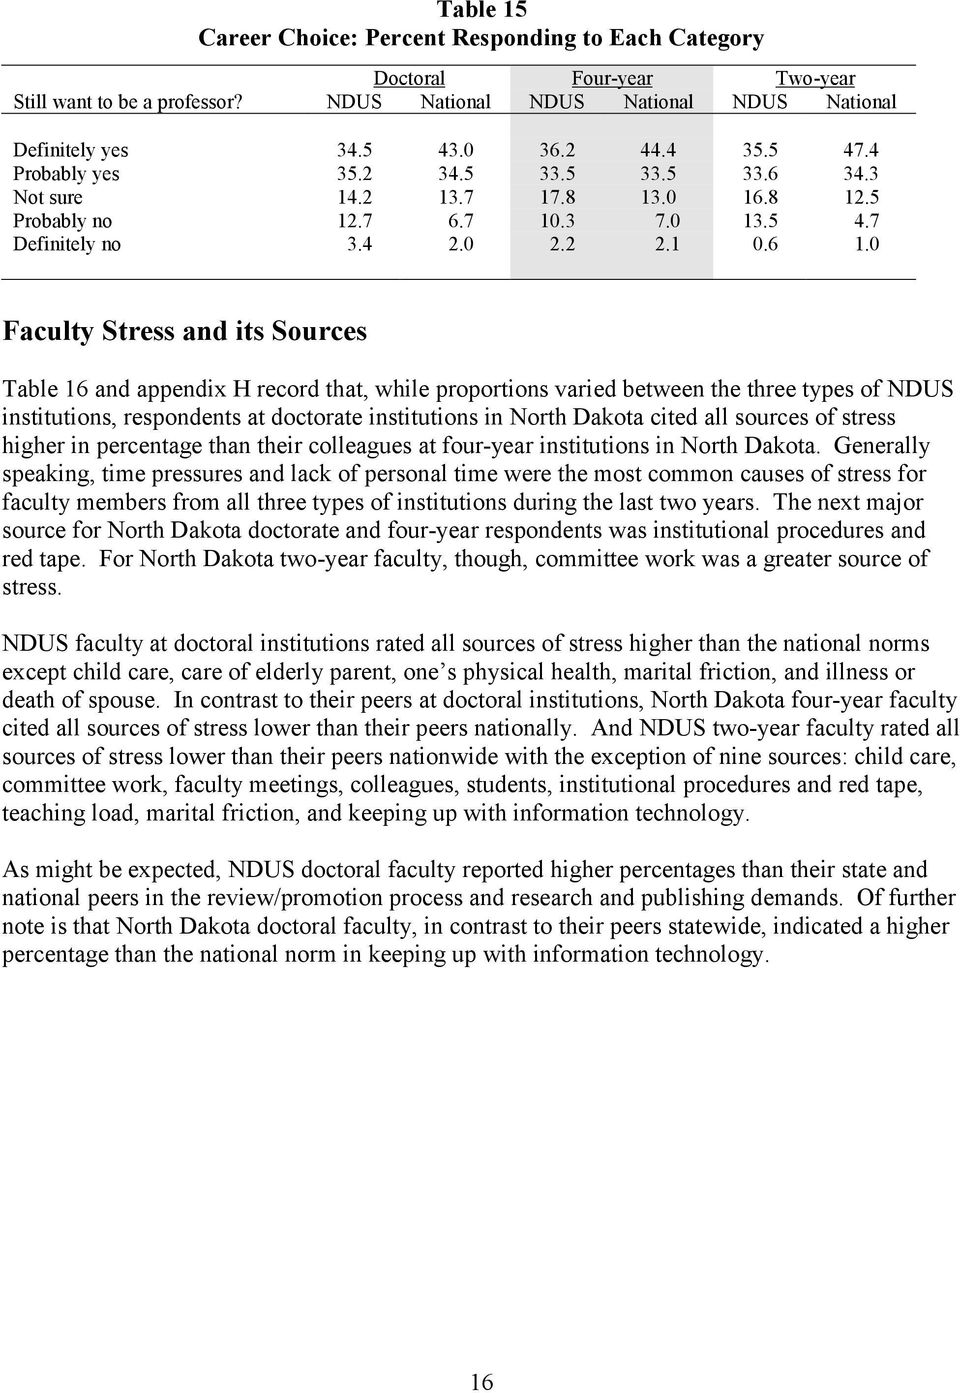 0 Faculty Stress and its Sources Table 16 and appendix H record that, while proportions varied between the three types of NDUS institutions, respondents at doctorate institutions in North Dakota